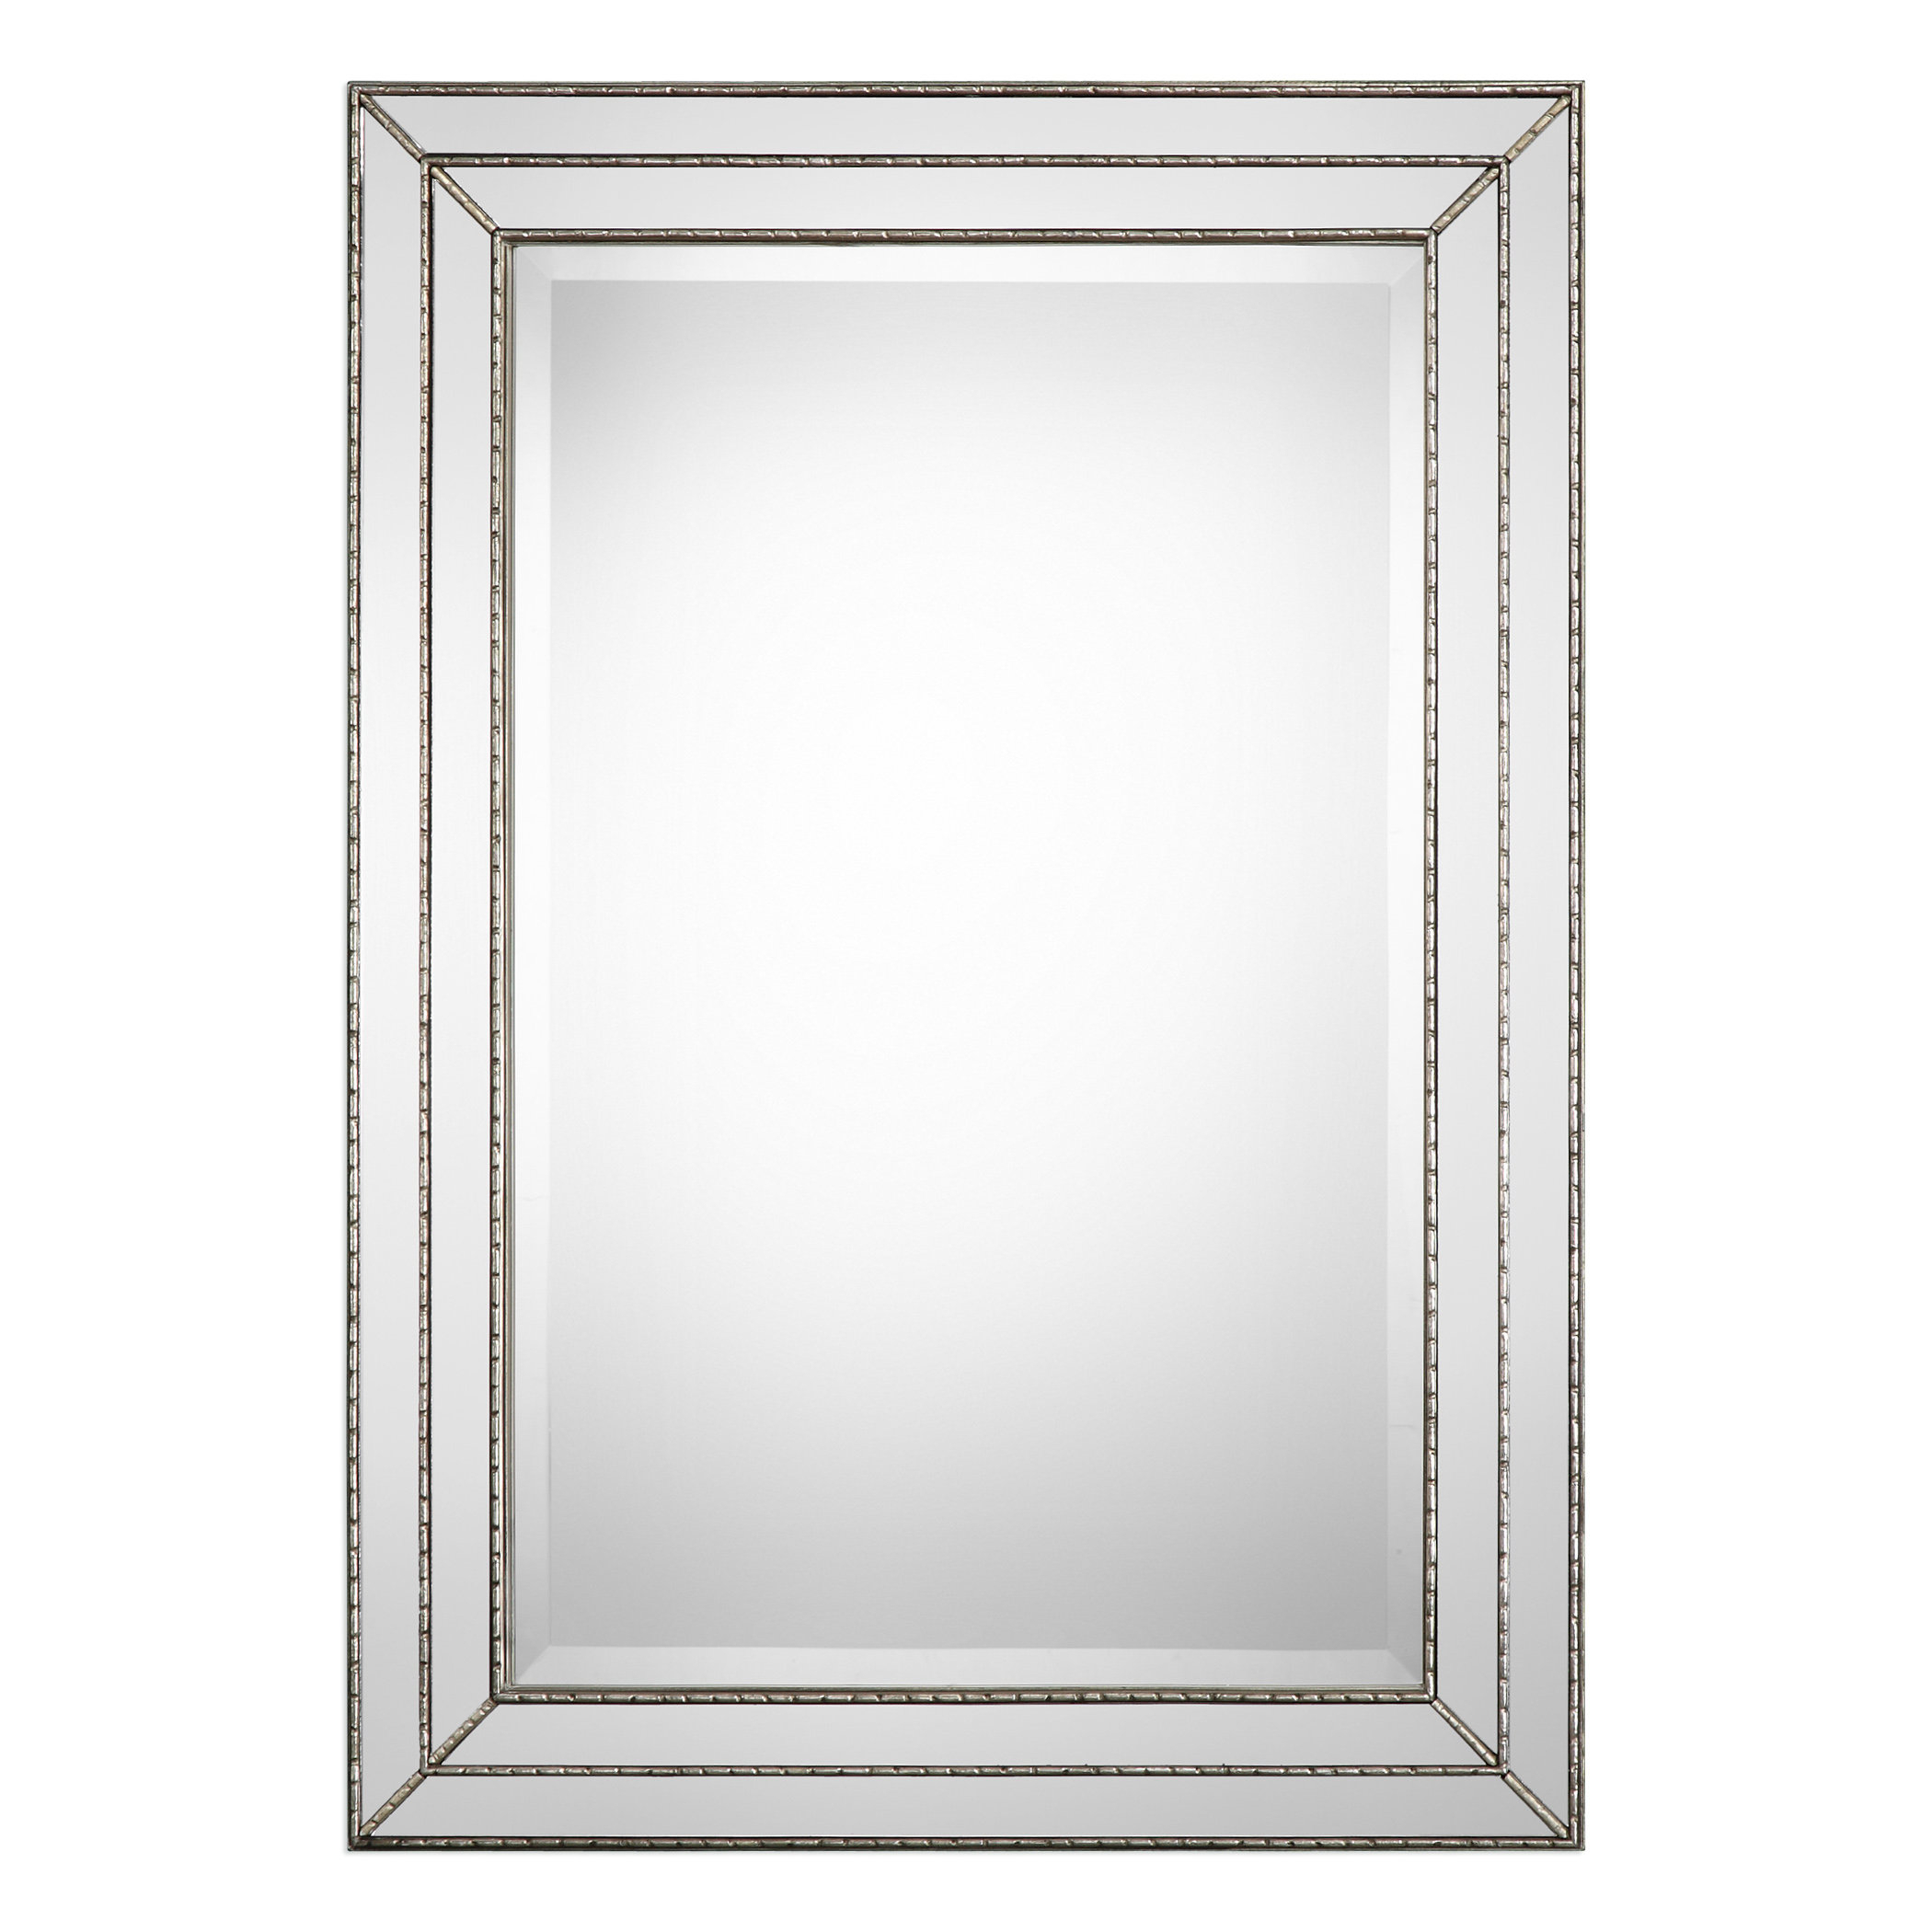 Greyleigh Willacoochee Traditional Beveled Accent Mirror For Alie Traditional Beveled Distressed Accent Mirrors (Image 14 of 20)